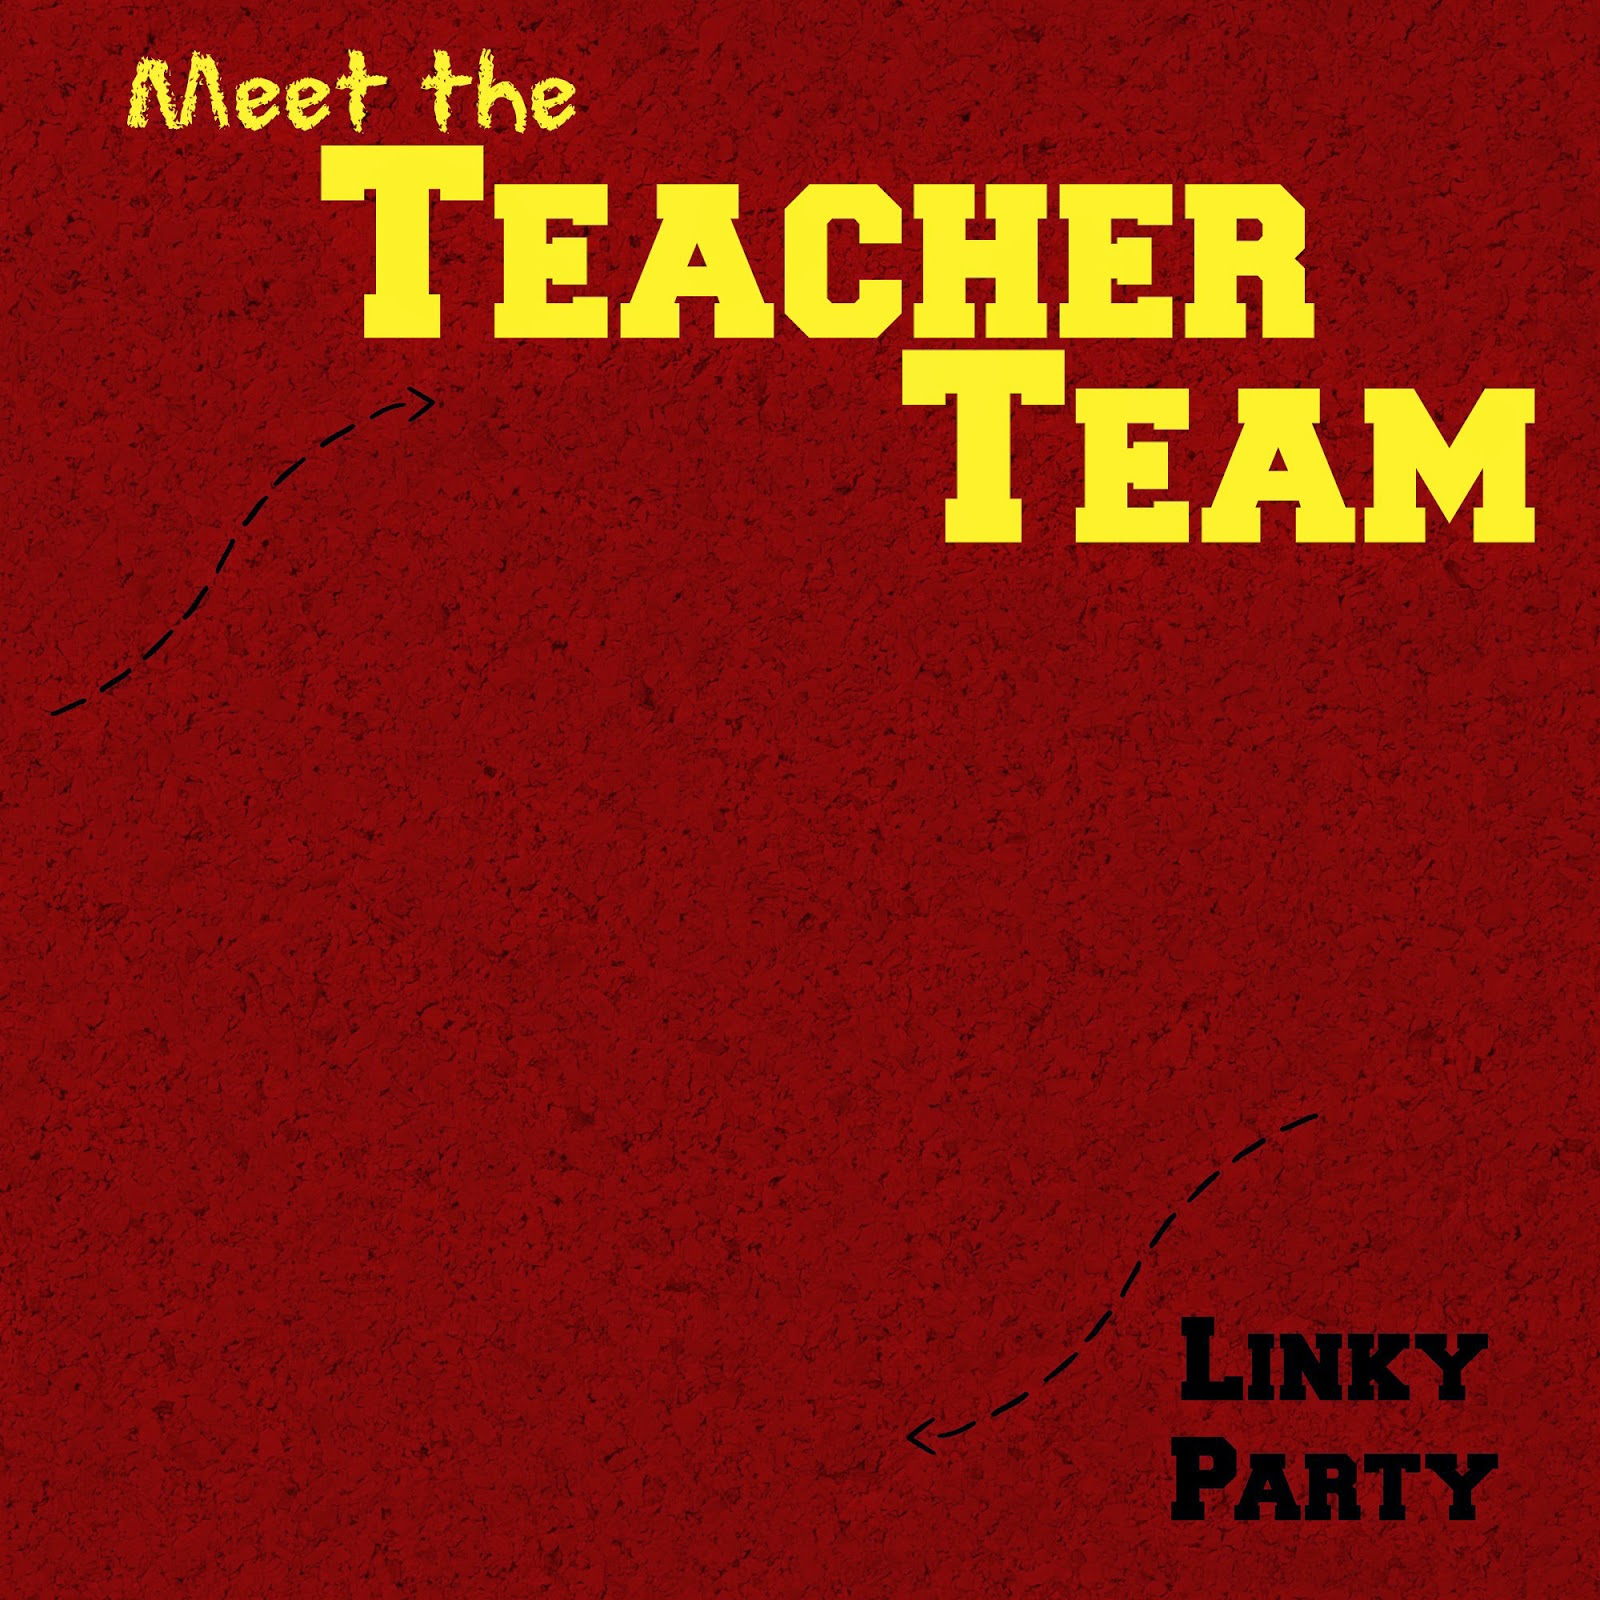 http://createdforlearning.blogspot.com/2014/09/meet-teacher-team-linky-party.html